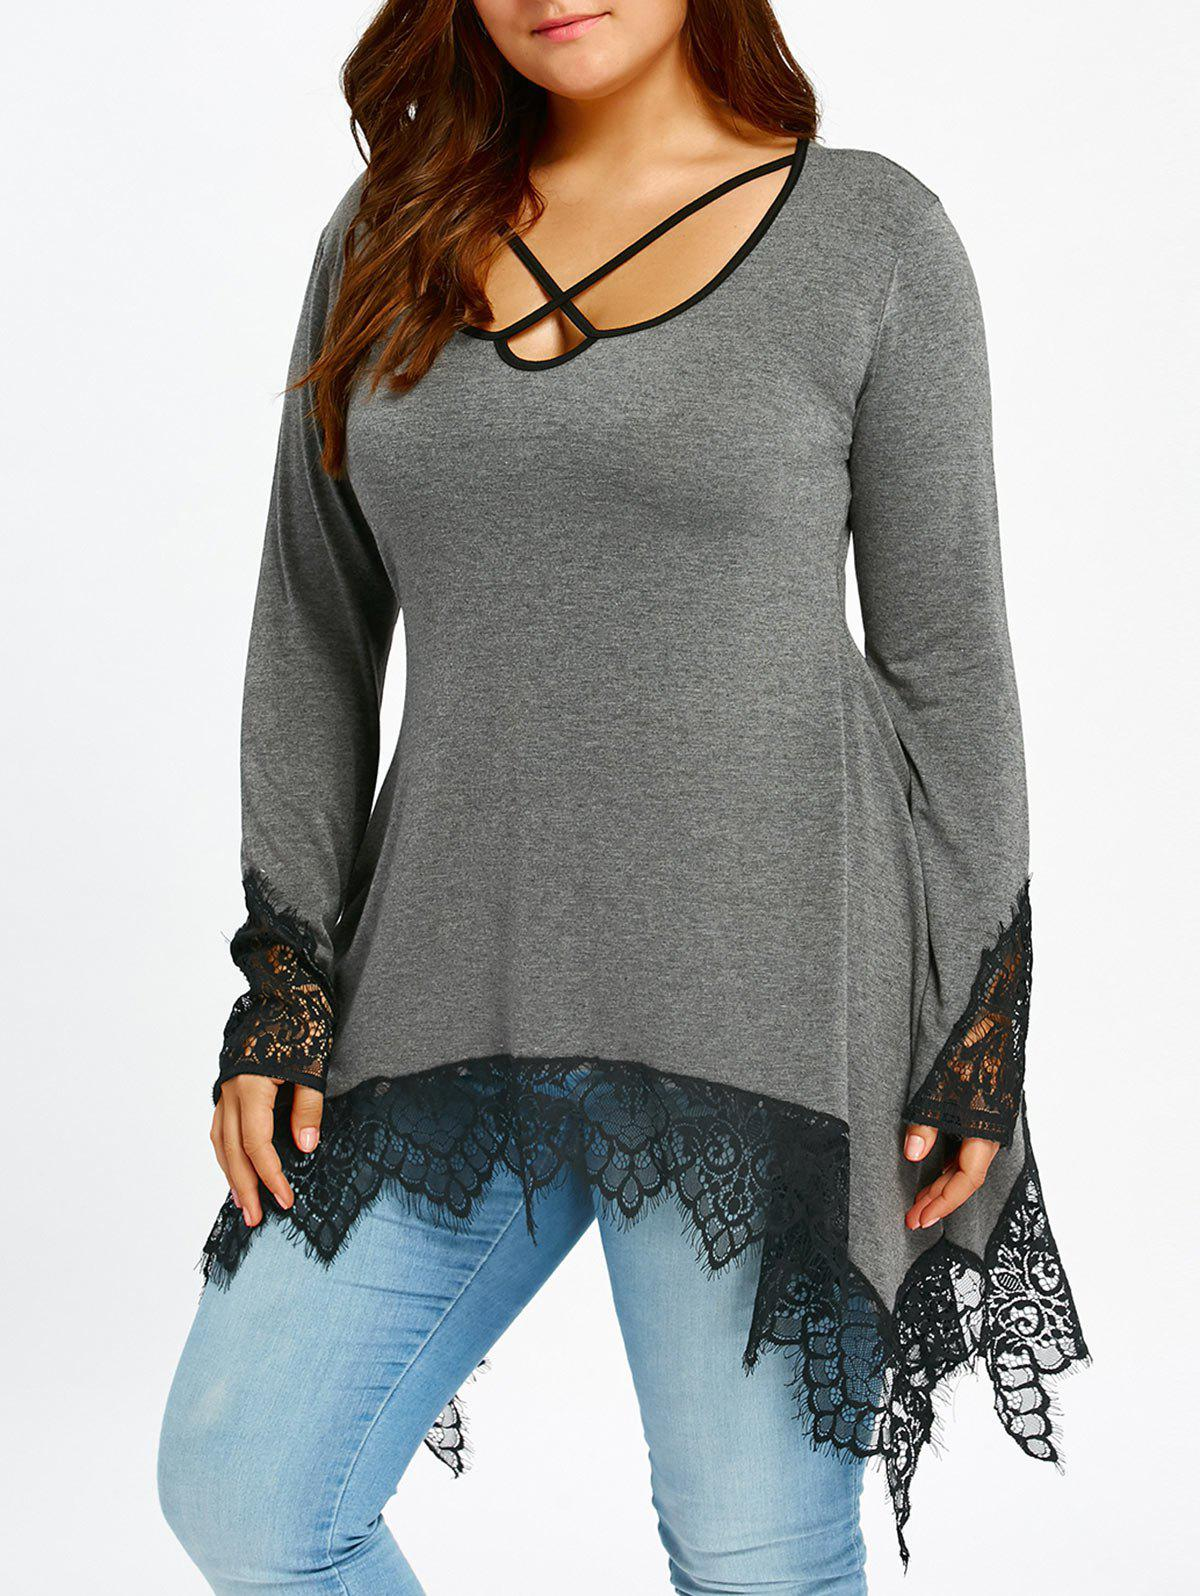 Plus Size Lace Trim Tunic Sharkbite T-shirt - GRAY 5XL